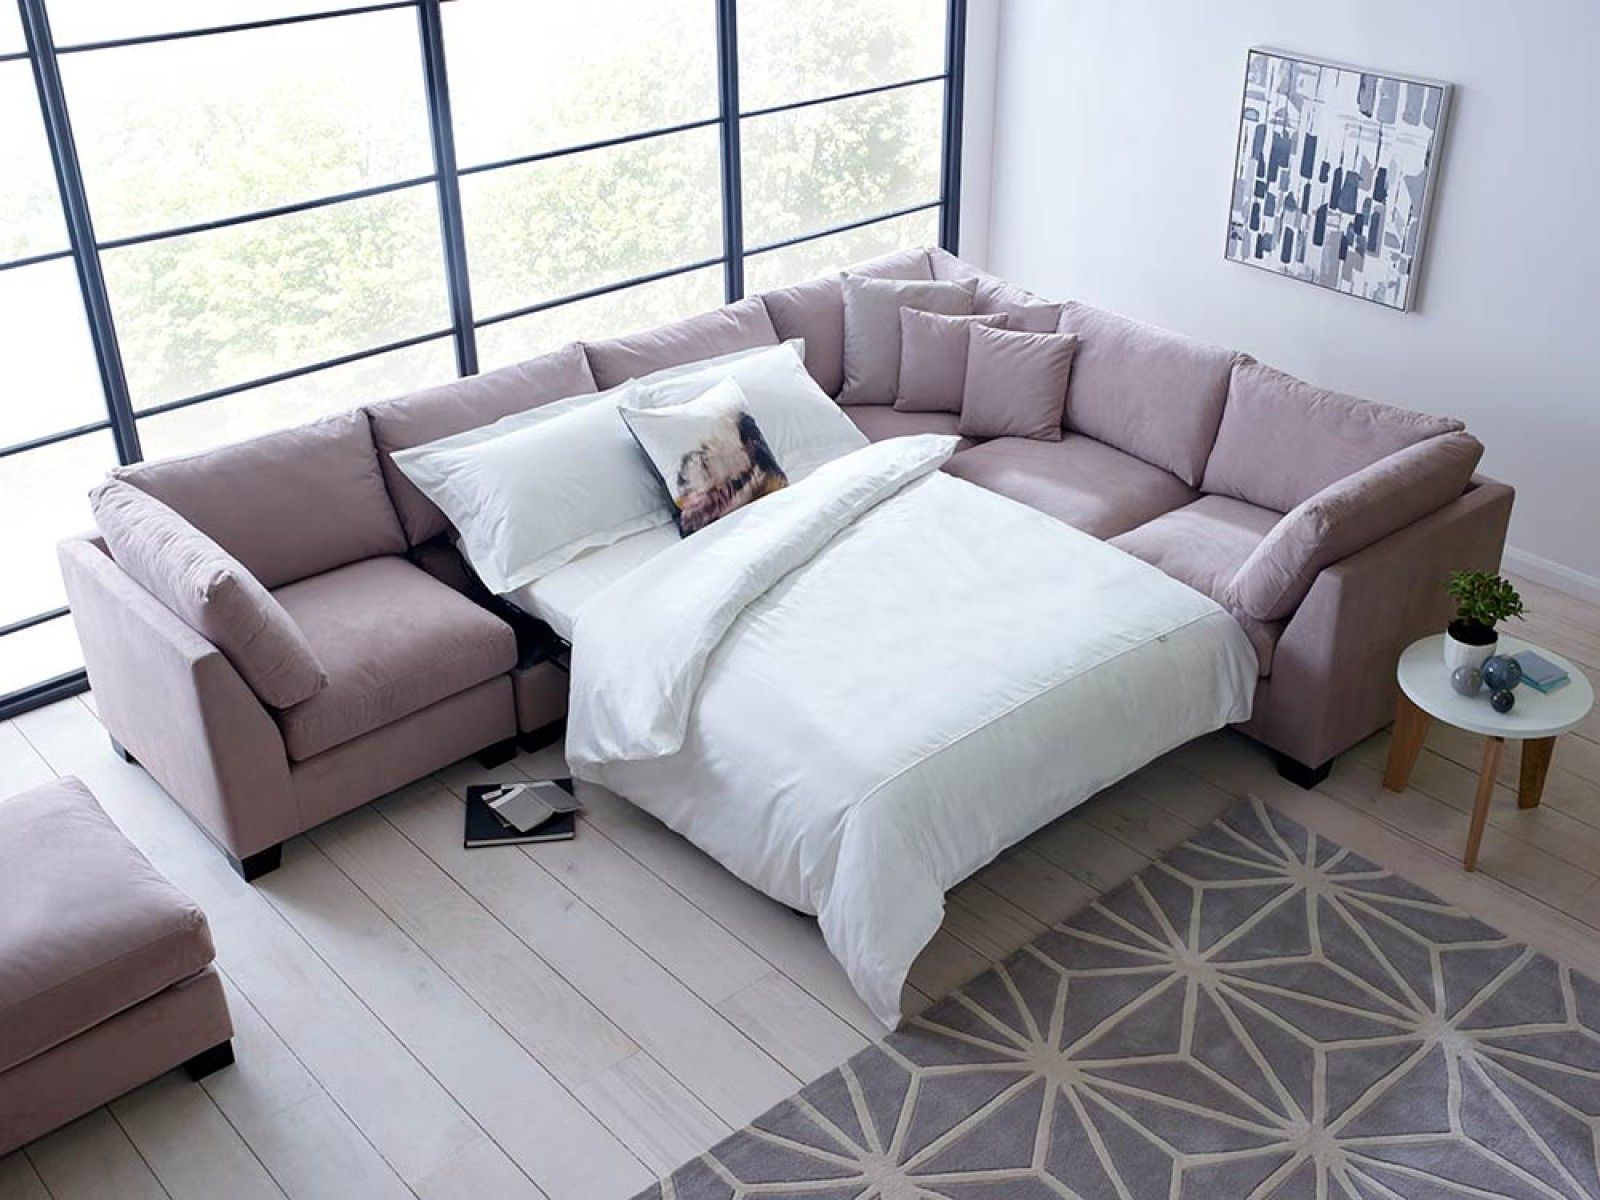 apartment size sofa bed sectional sal n pinterest apartment size sofa sofa set and apartments. Black Bedroom Furniture Sets. Home Design Ideas